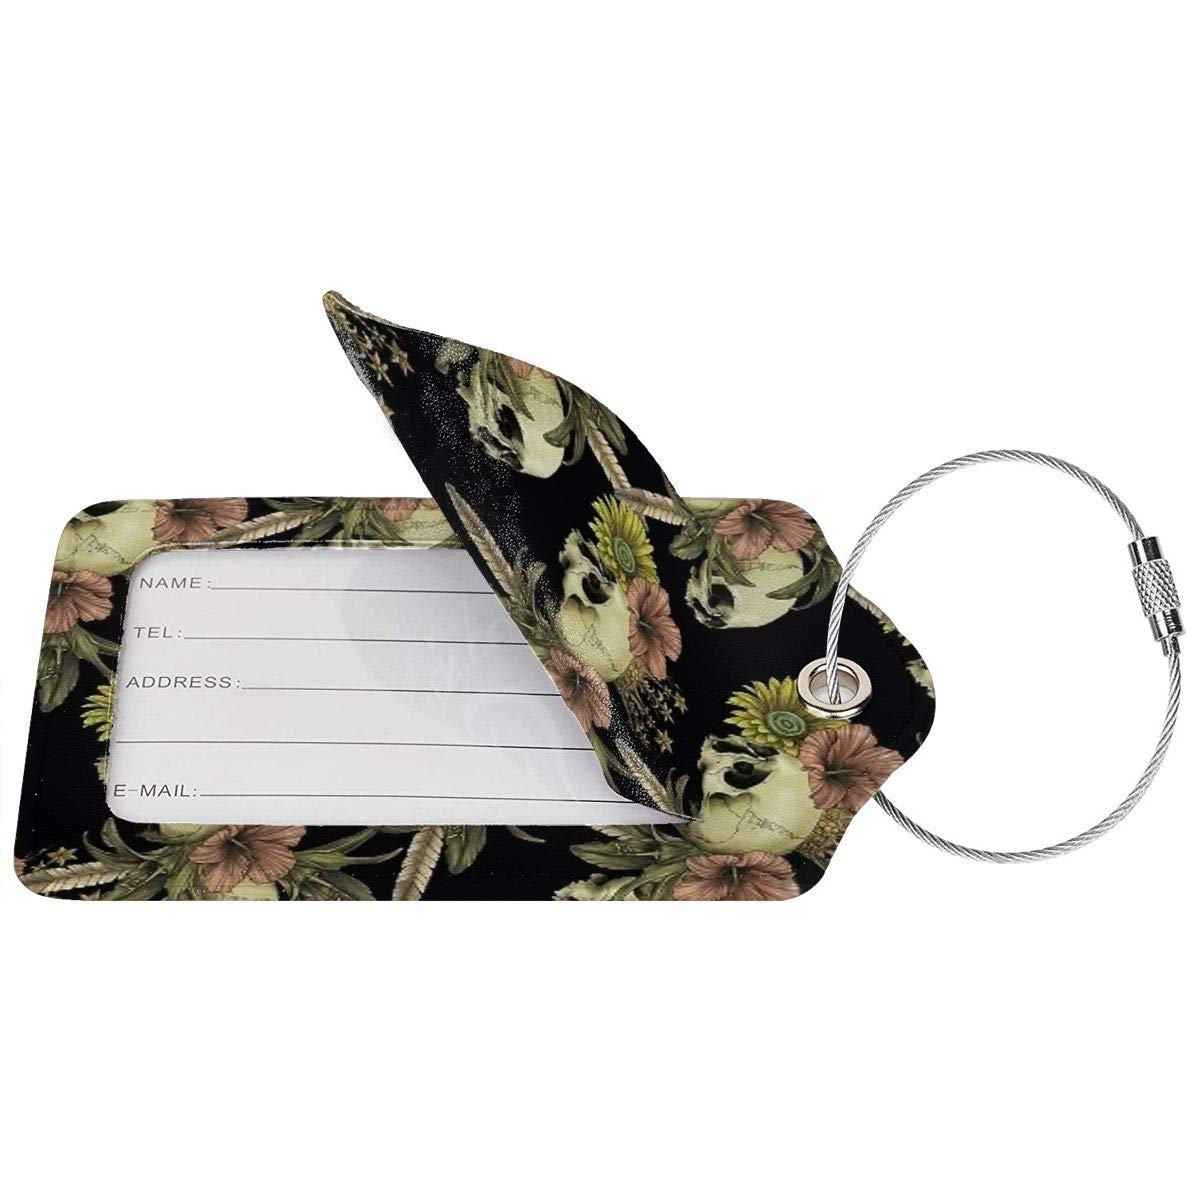 Vintage Skull Flower Luggage Tag Label Travel Bag Label With Privacy Cover Luggage Tag Leather Personalized Suitcase Tag Travel Accessories